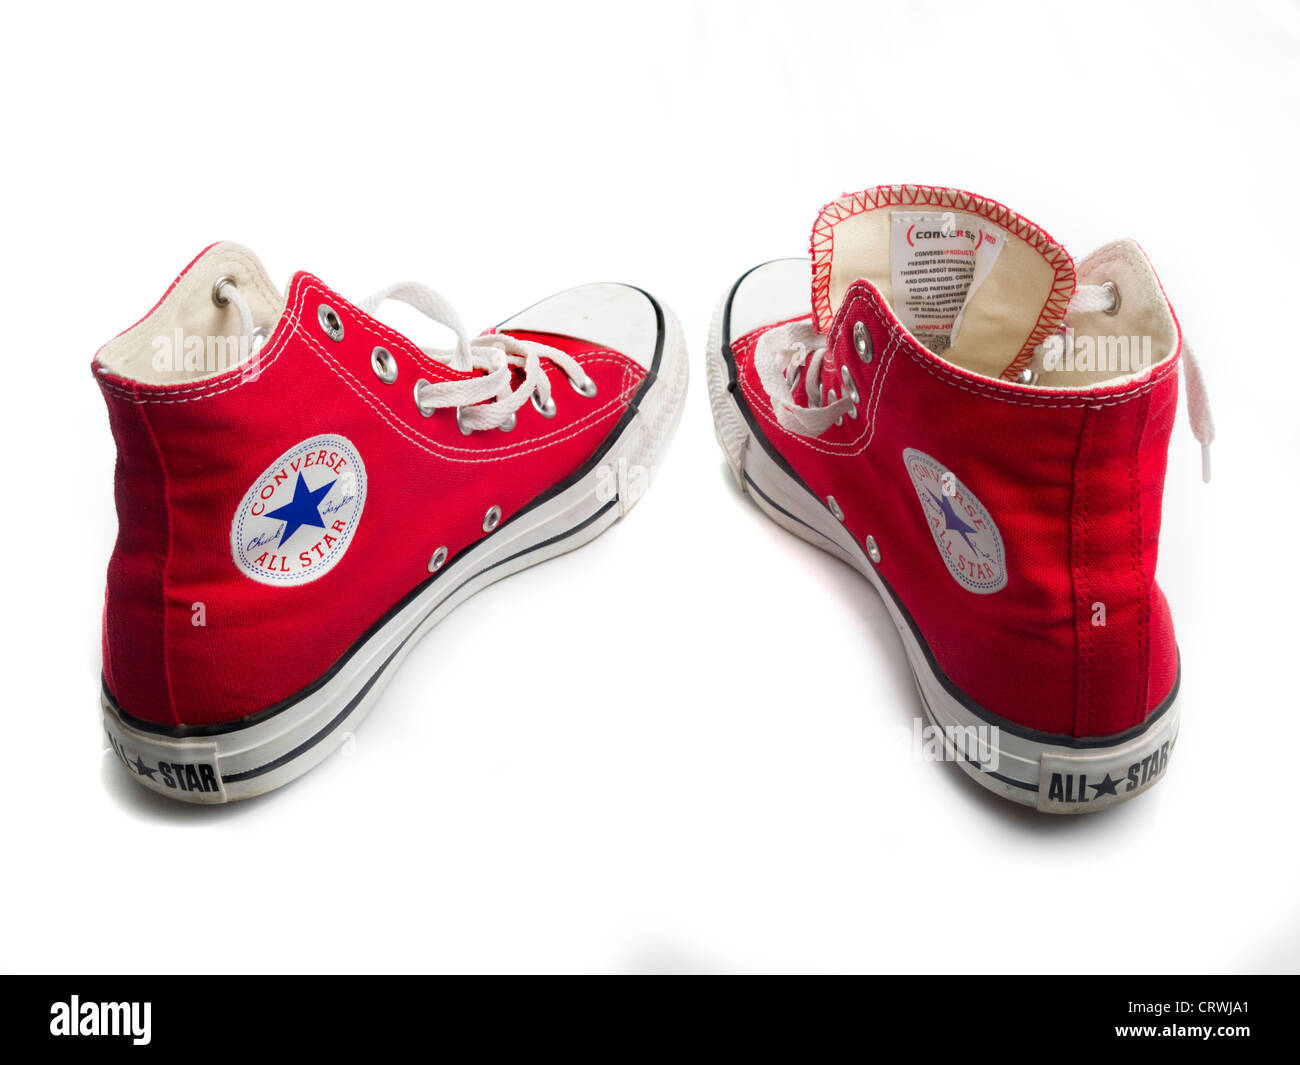 2019 year for women- Red photography converse